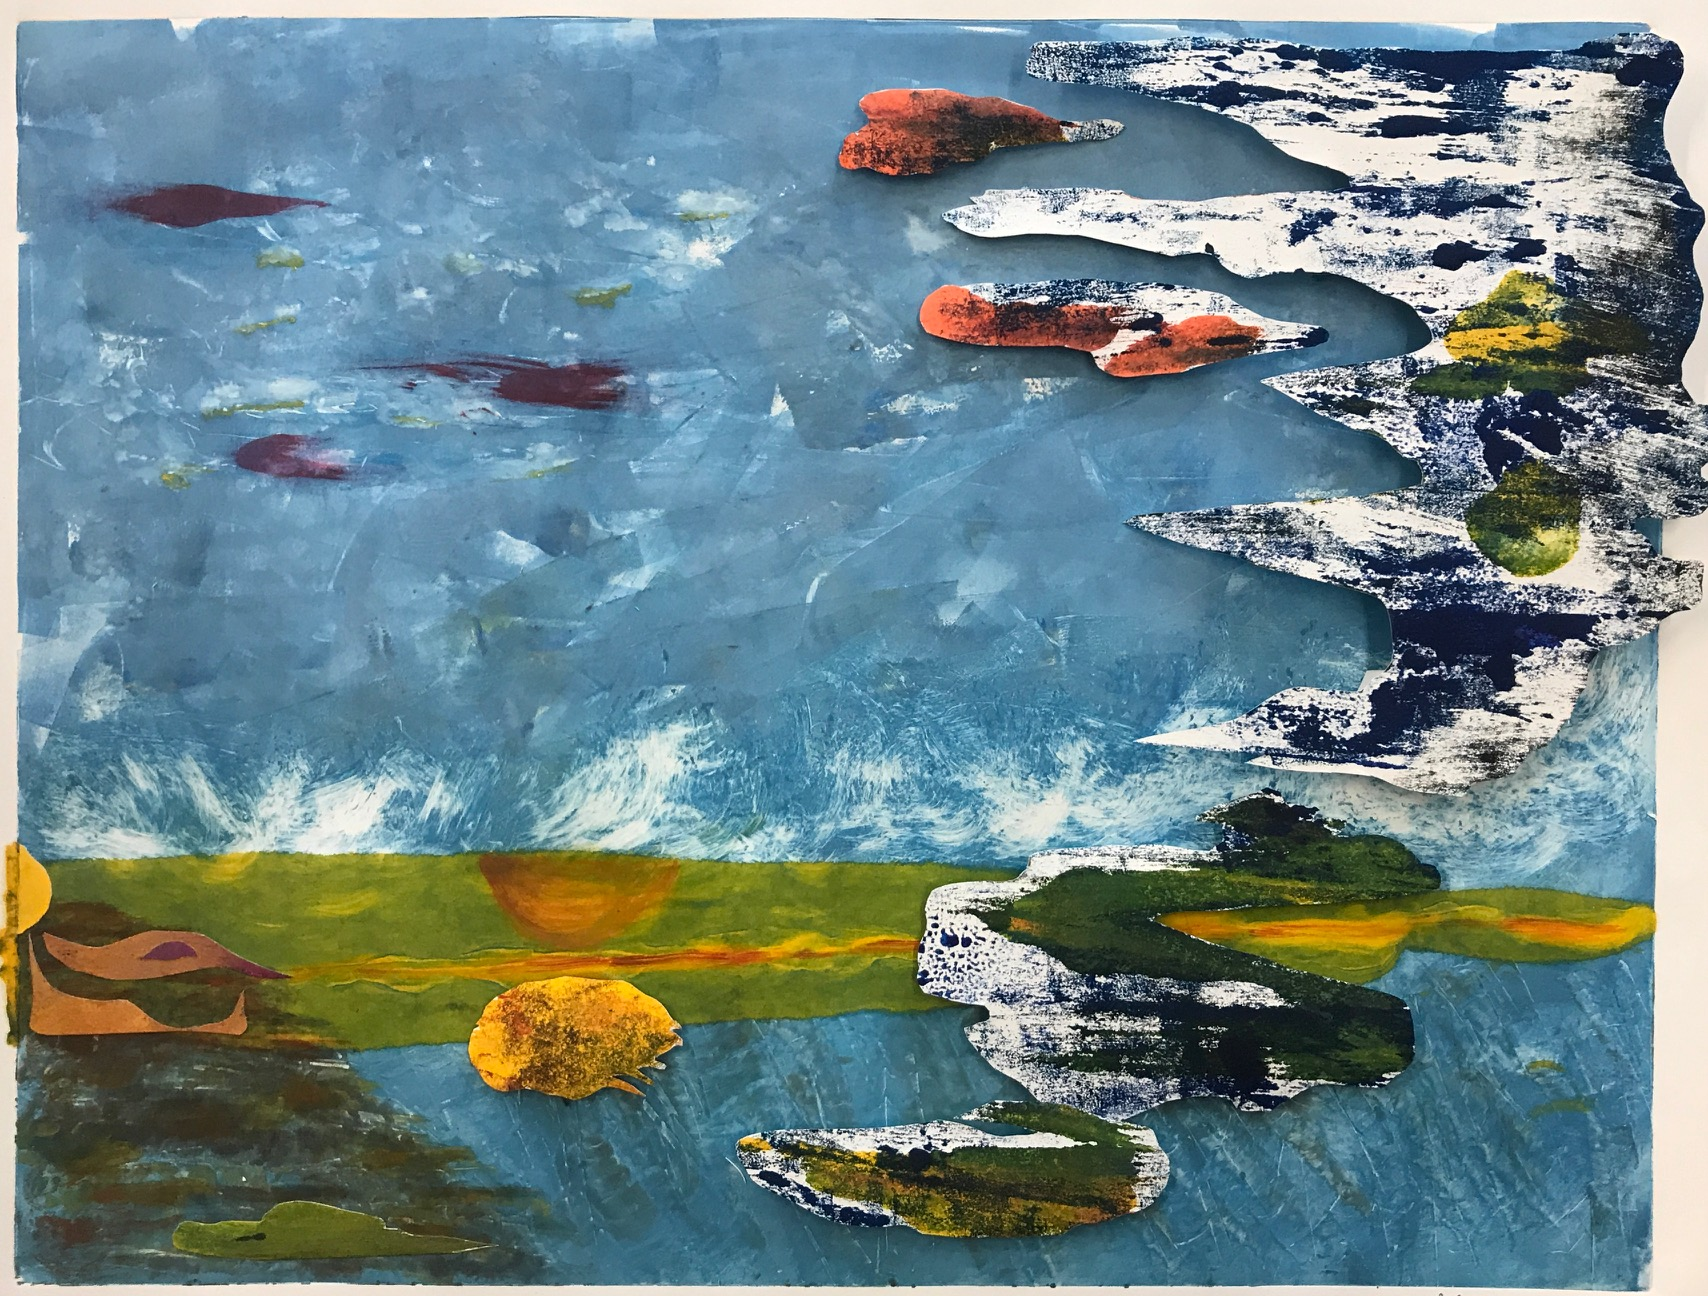 """Jacqueline Lorieo, Secluded Harbor, 3-D monotype, 24""""x18"""",$600"""